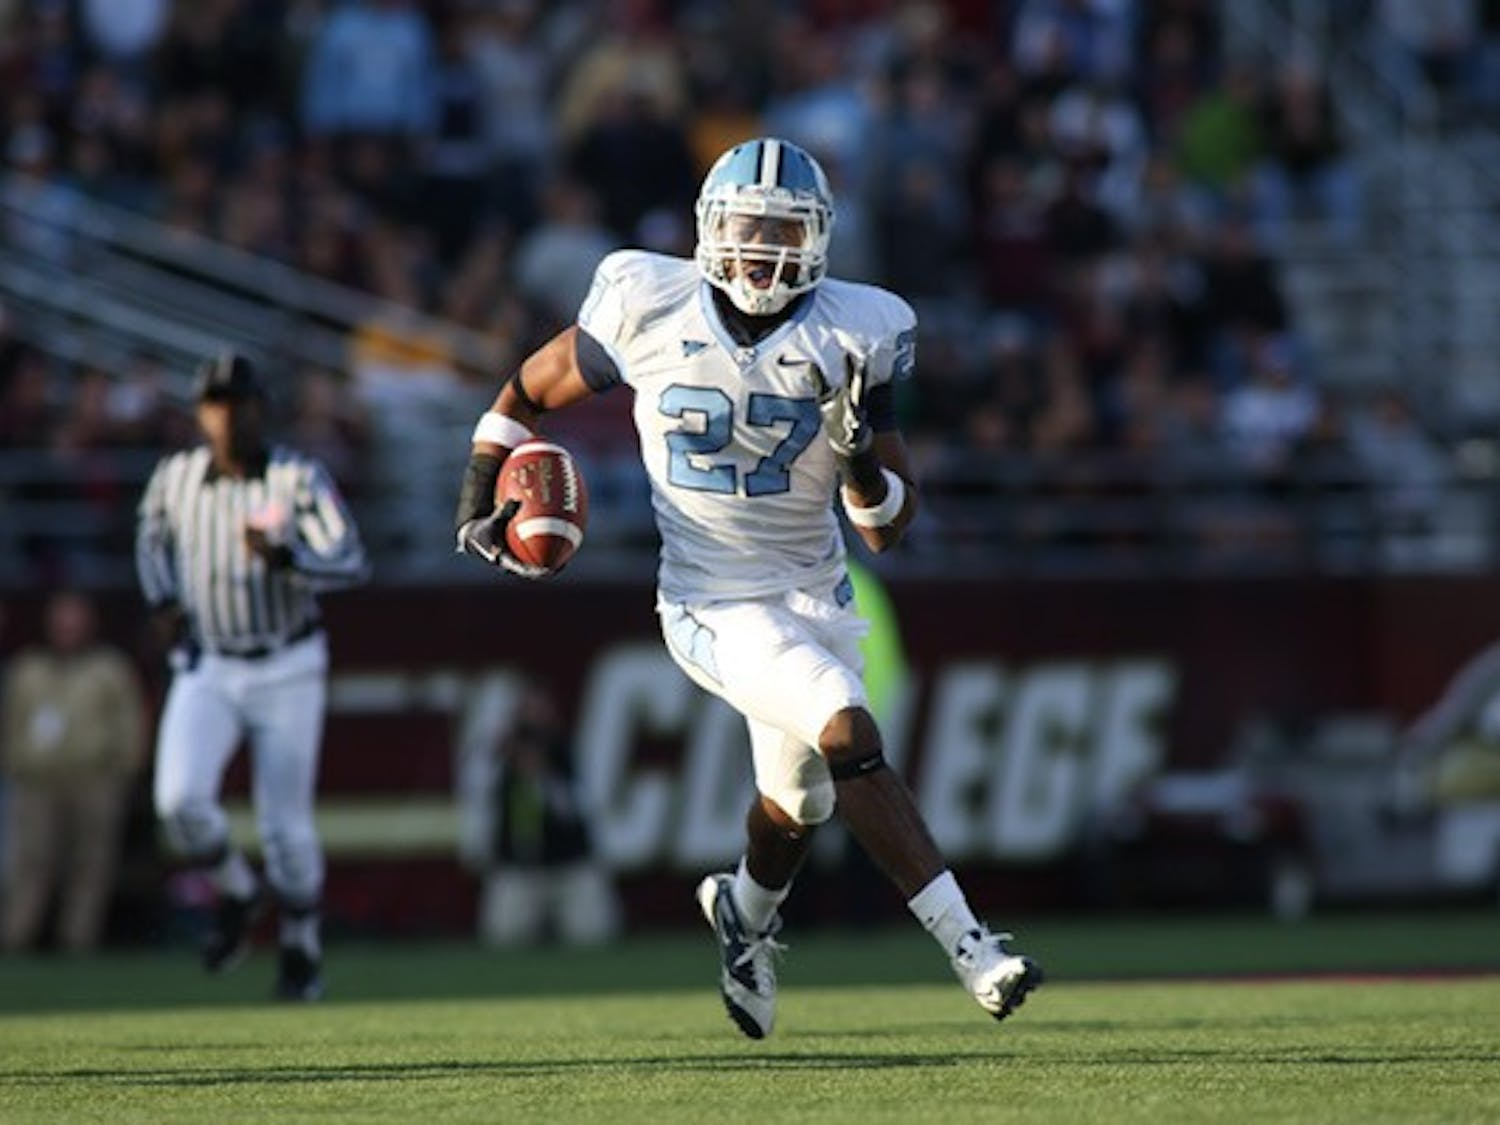 UNC had five interceptions Saturday, including three by Deunta Williams. DTH/Andrew Johnson